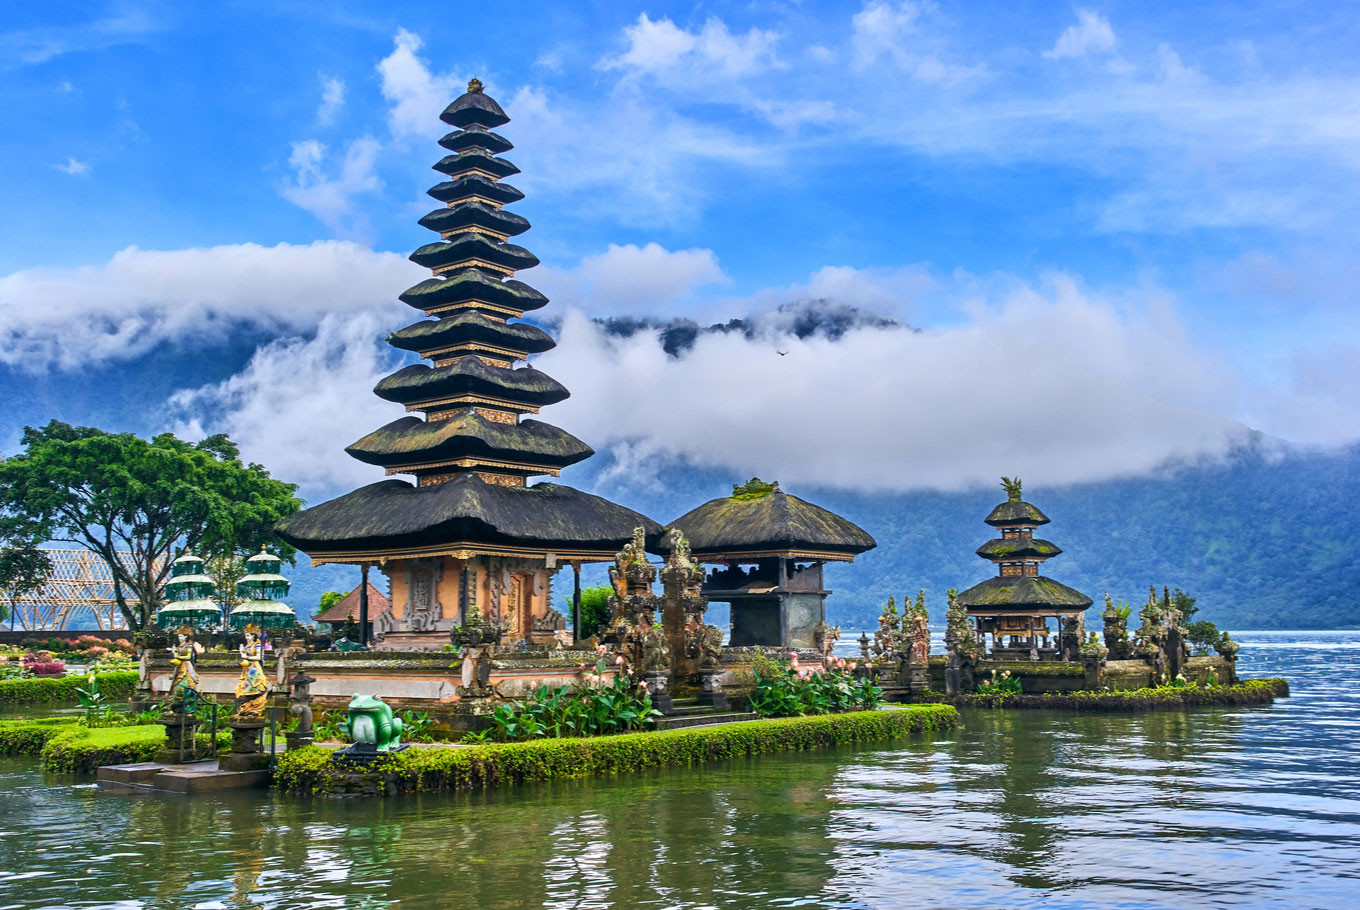 Cheap Flights To Bali Indonesia From San Francisco $519 Return